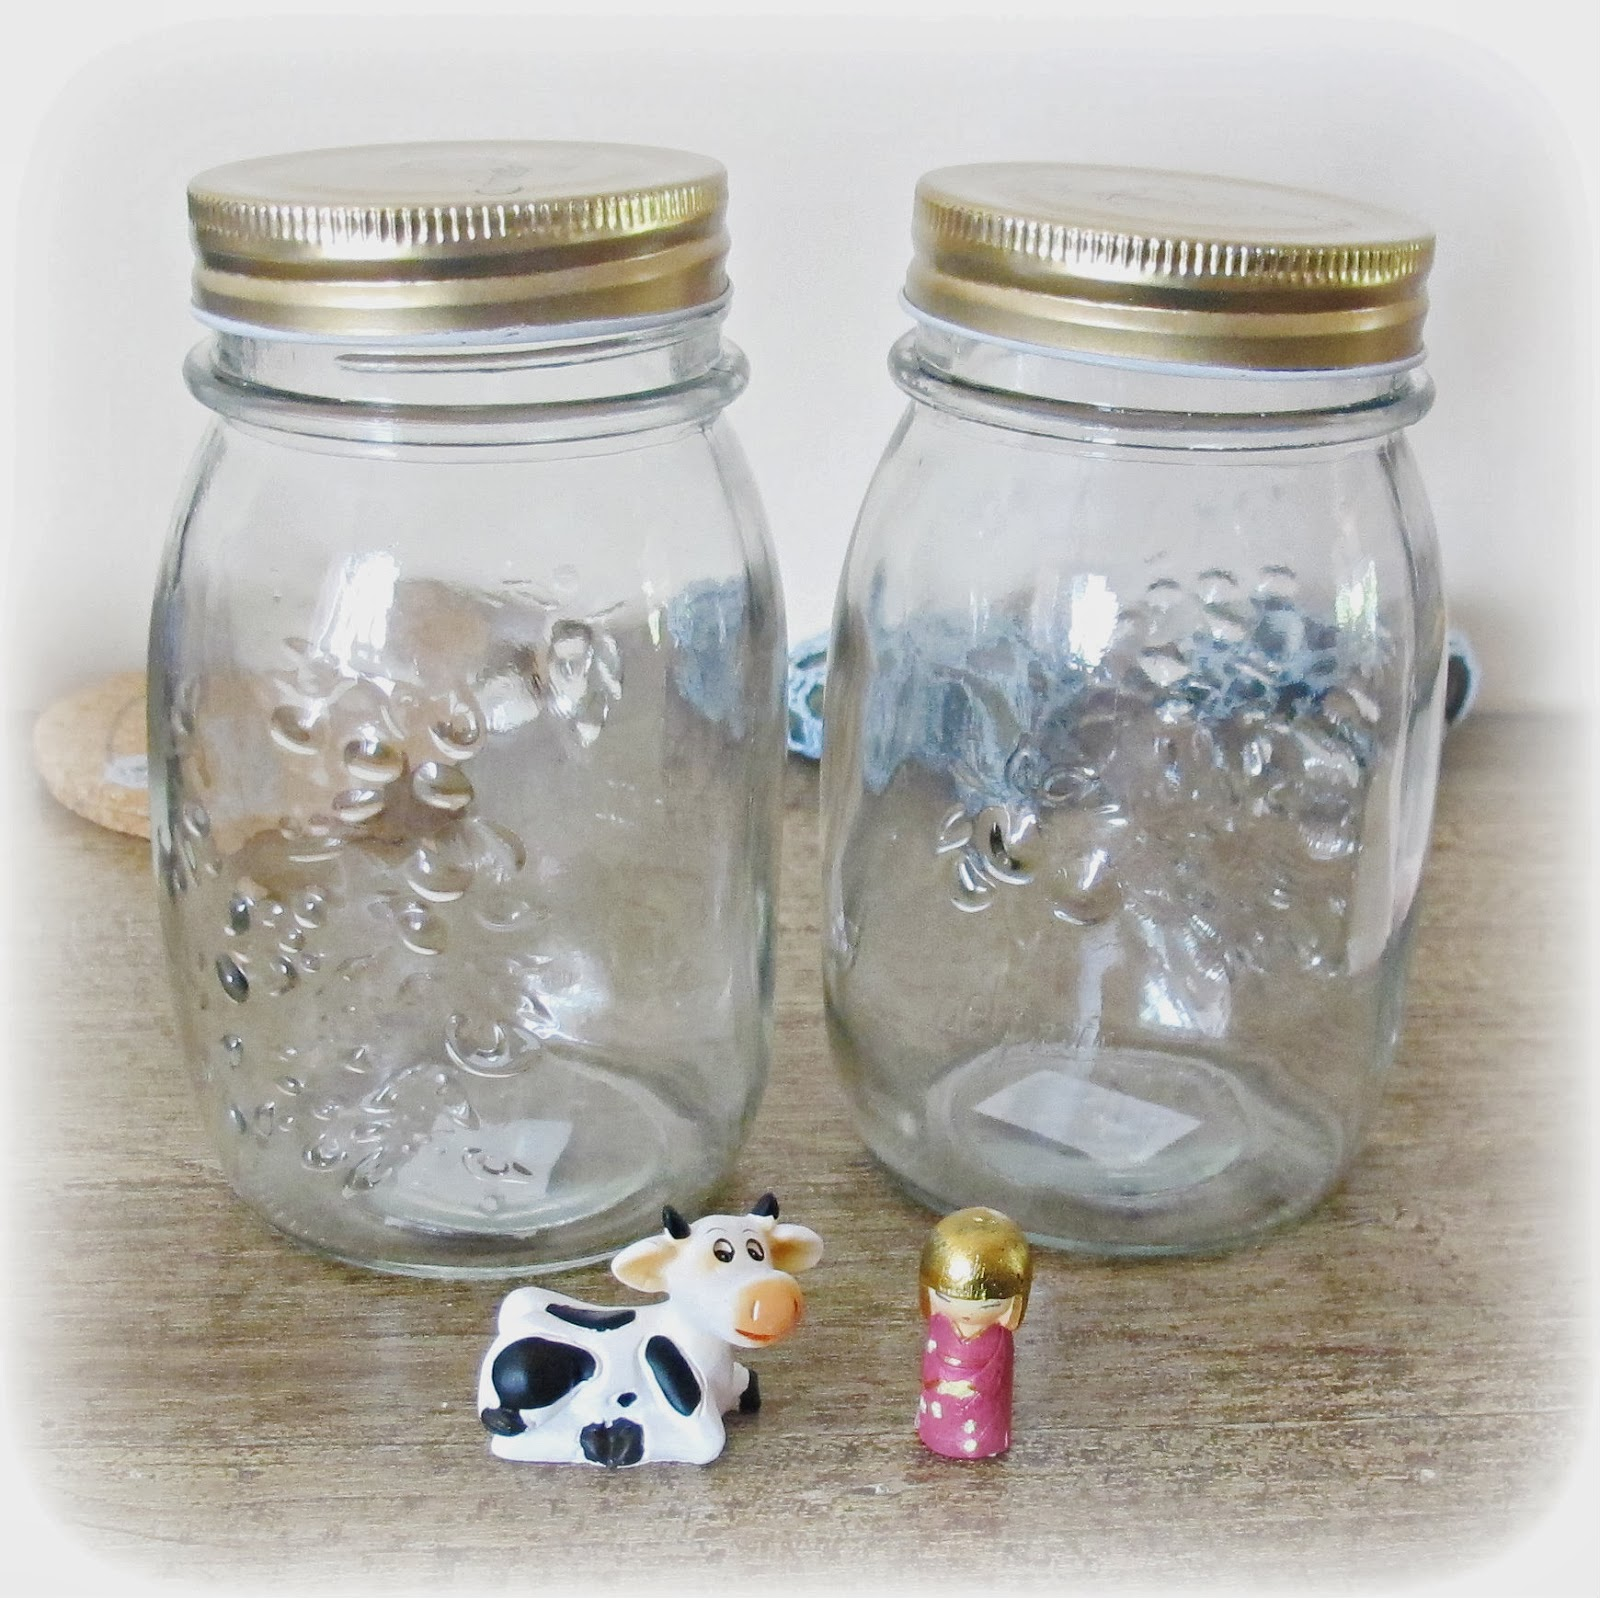 image diy decorated jars tutorial painted figurines